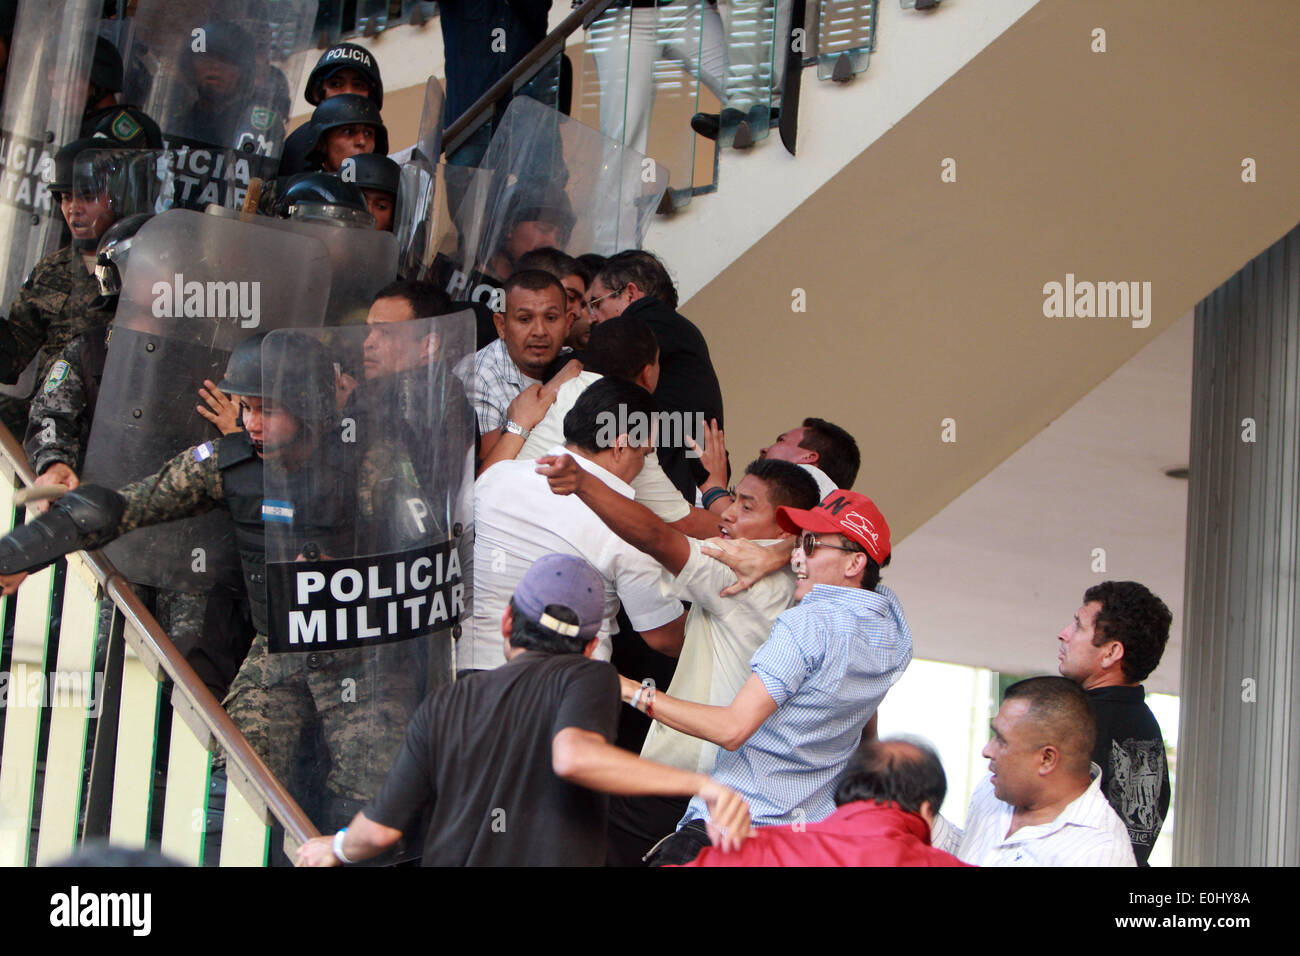 Tegucigalpa, Honduras. 13th May, 2014. Police elements and supporters of the former Honduran President Manuel Zelaya clash in front of the National Congress in Tegucigalpa, Honduras, on May 13, 2014. Followers and deputies of the Liberty and Refoundation Party (Libre, for its acronym in Spanish), the second political force in Honduras, broke in the National Congress on Tuesday, after clashing with police elements that guarded the Legislative Palace. Credit:  Rafael Ochoa/Xinhua/Alamy Live News Stock Photo